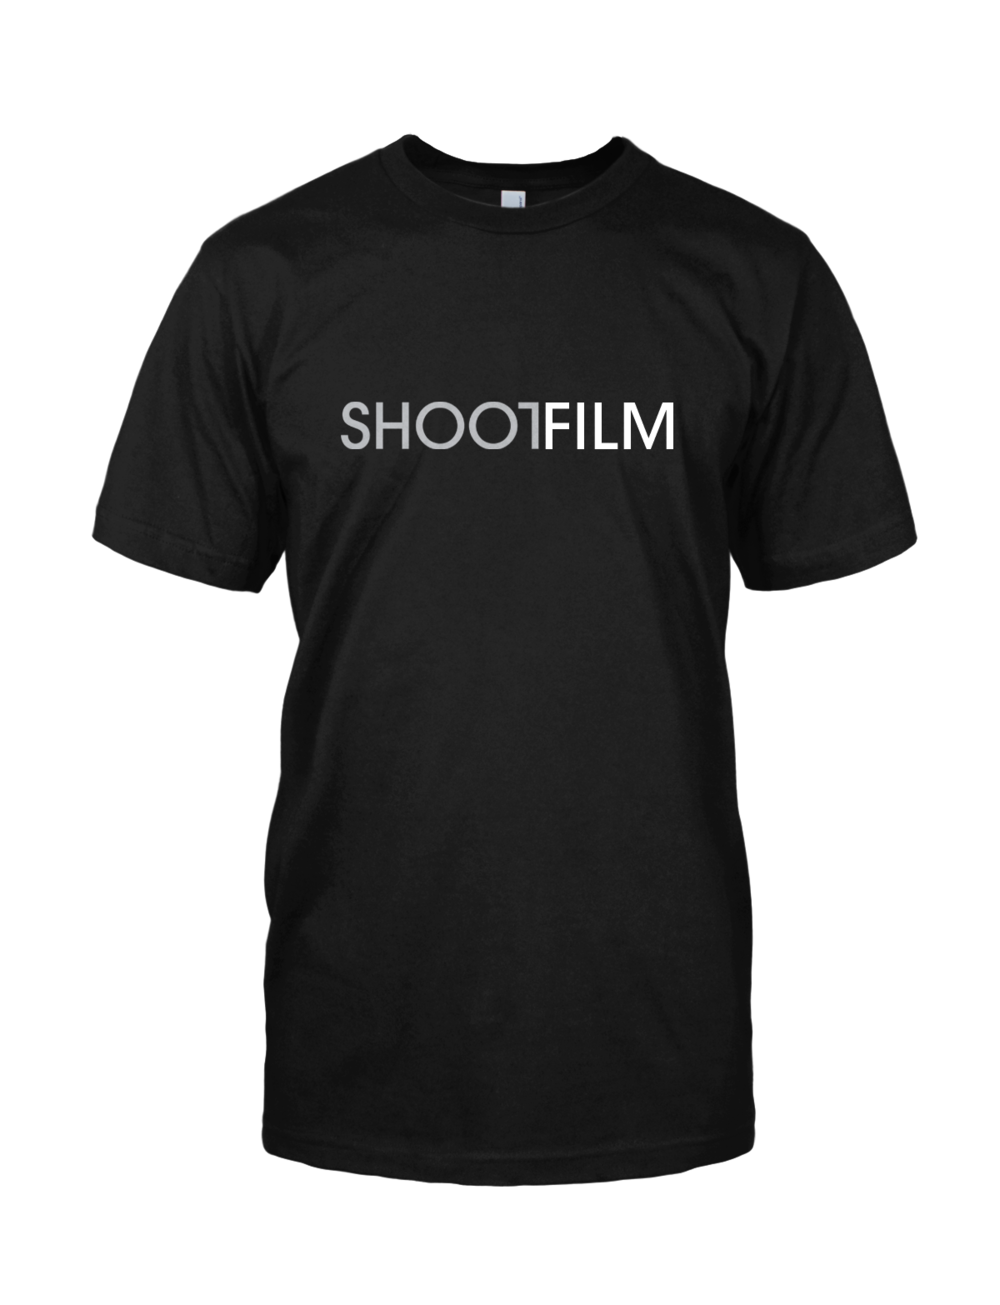 Shoot Film shirts from Shoot Tokyo